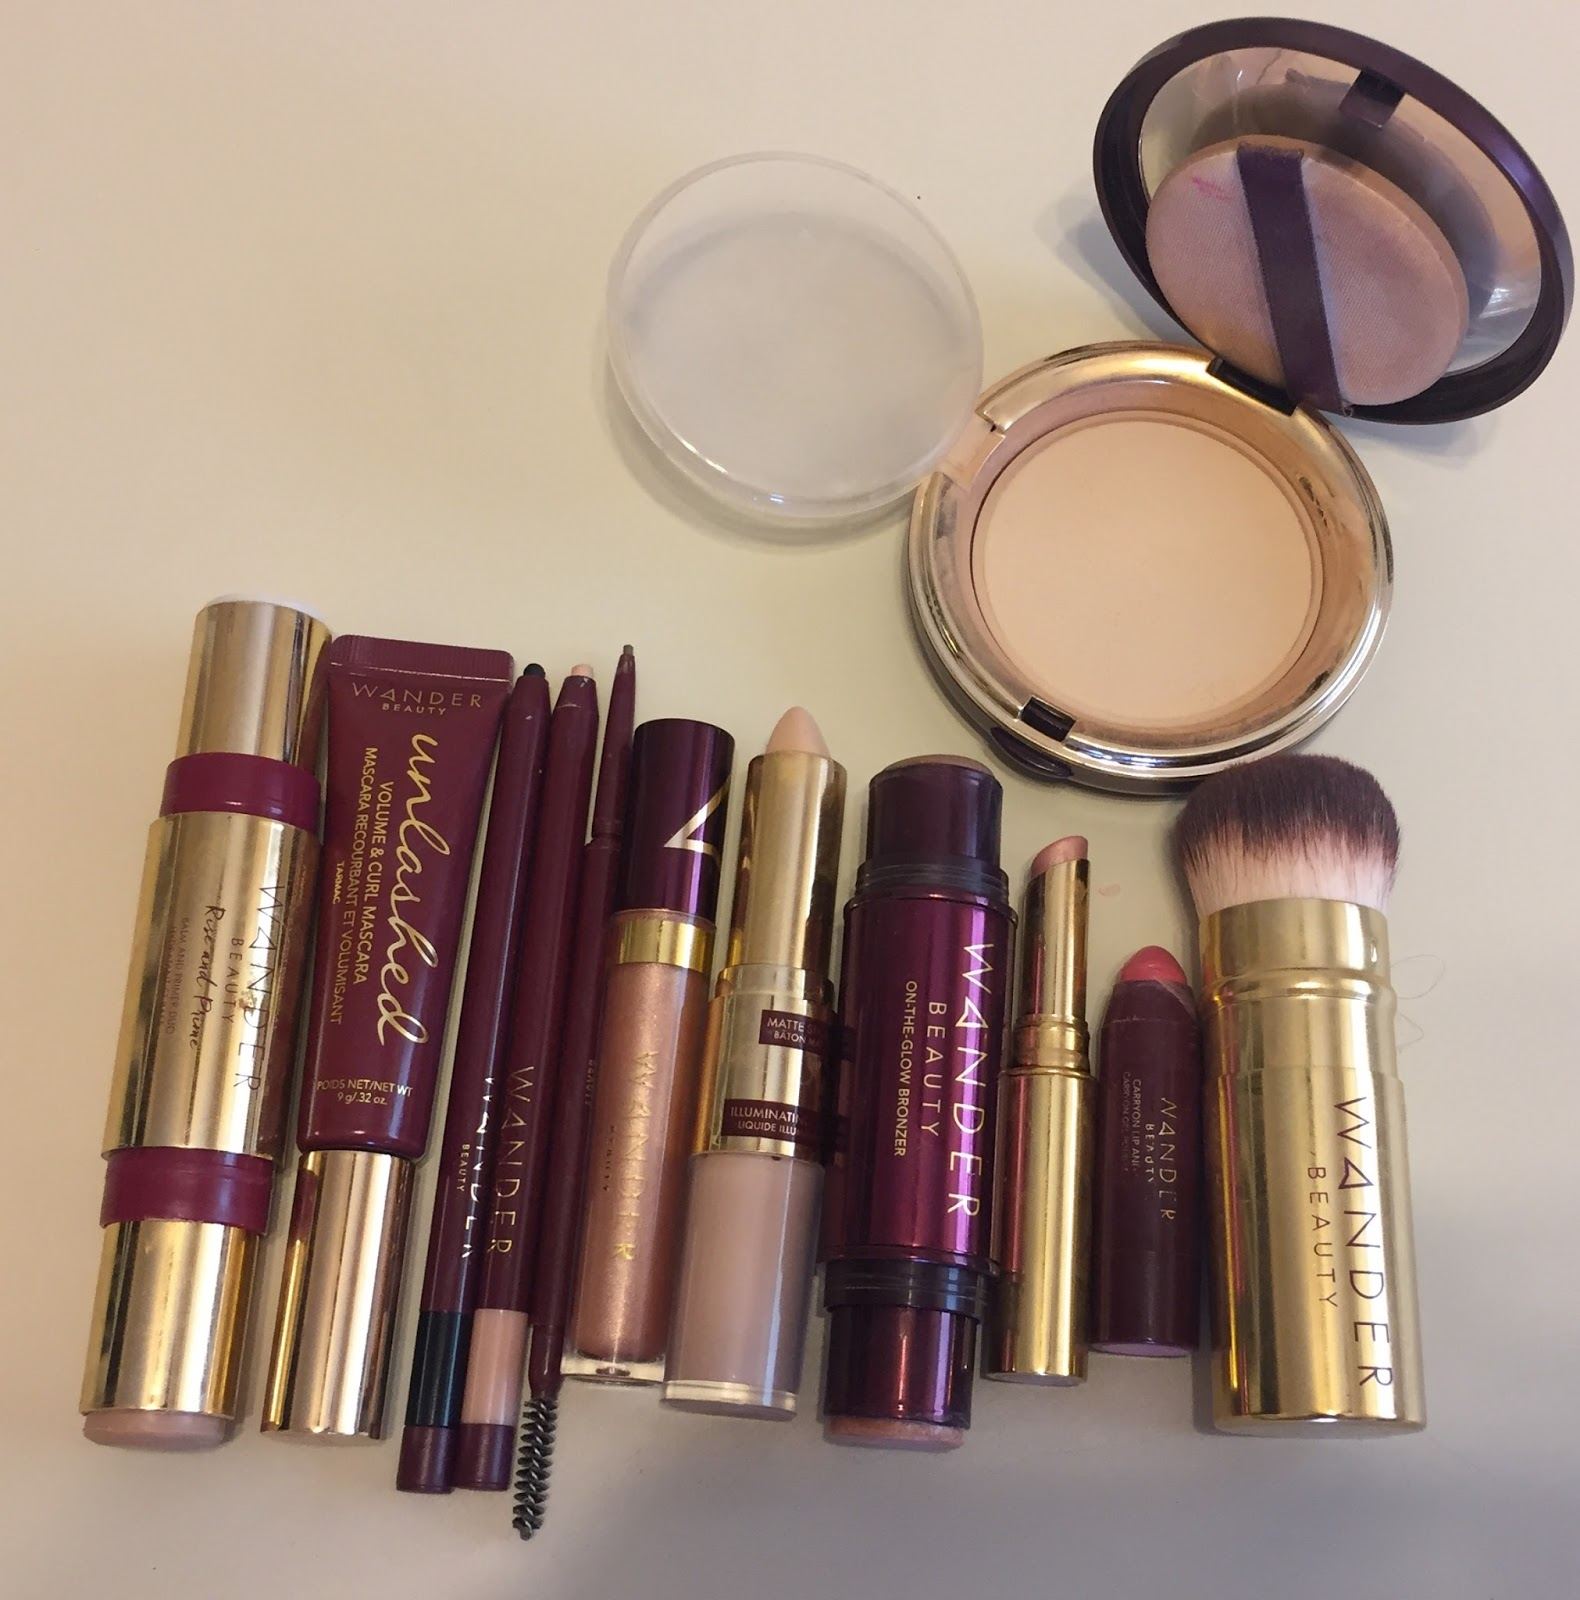 ebf13399fa4 So here are my steps to applying a full face of makeup using all Wander  Beauty. Talk about quick and eays makeup- I used my fingers for almost  everything ...